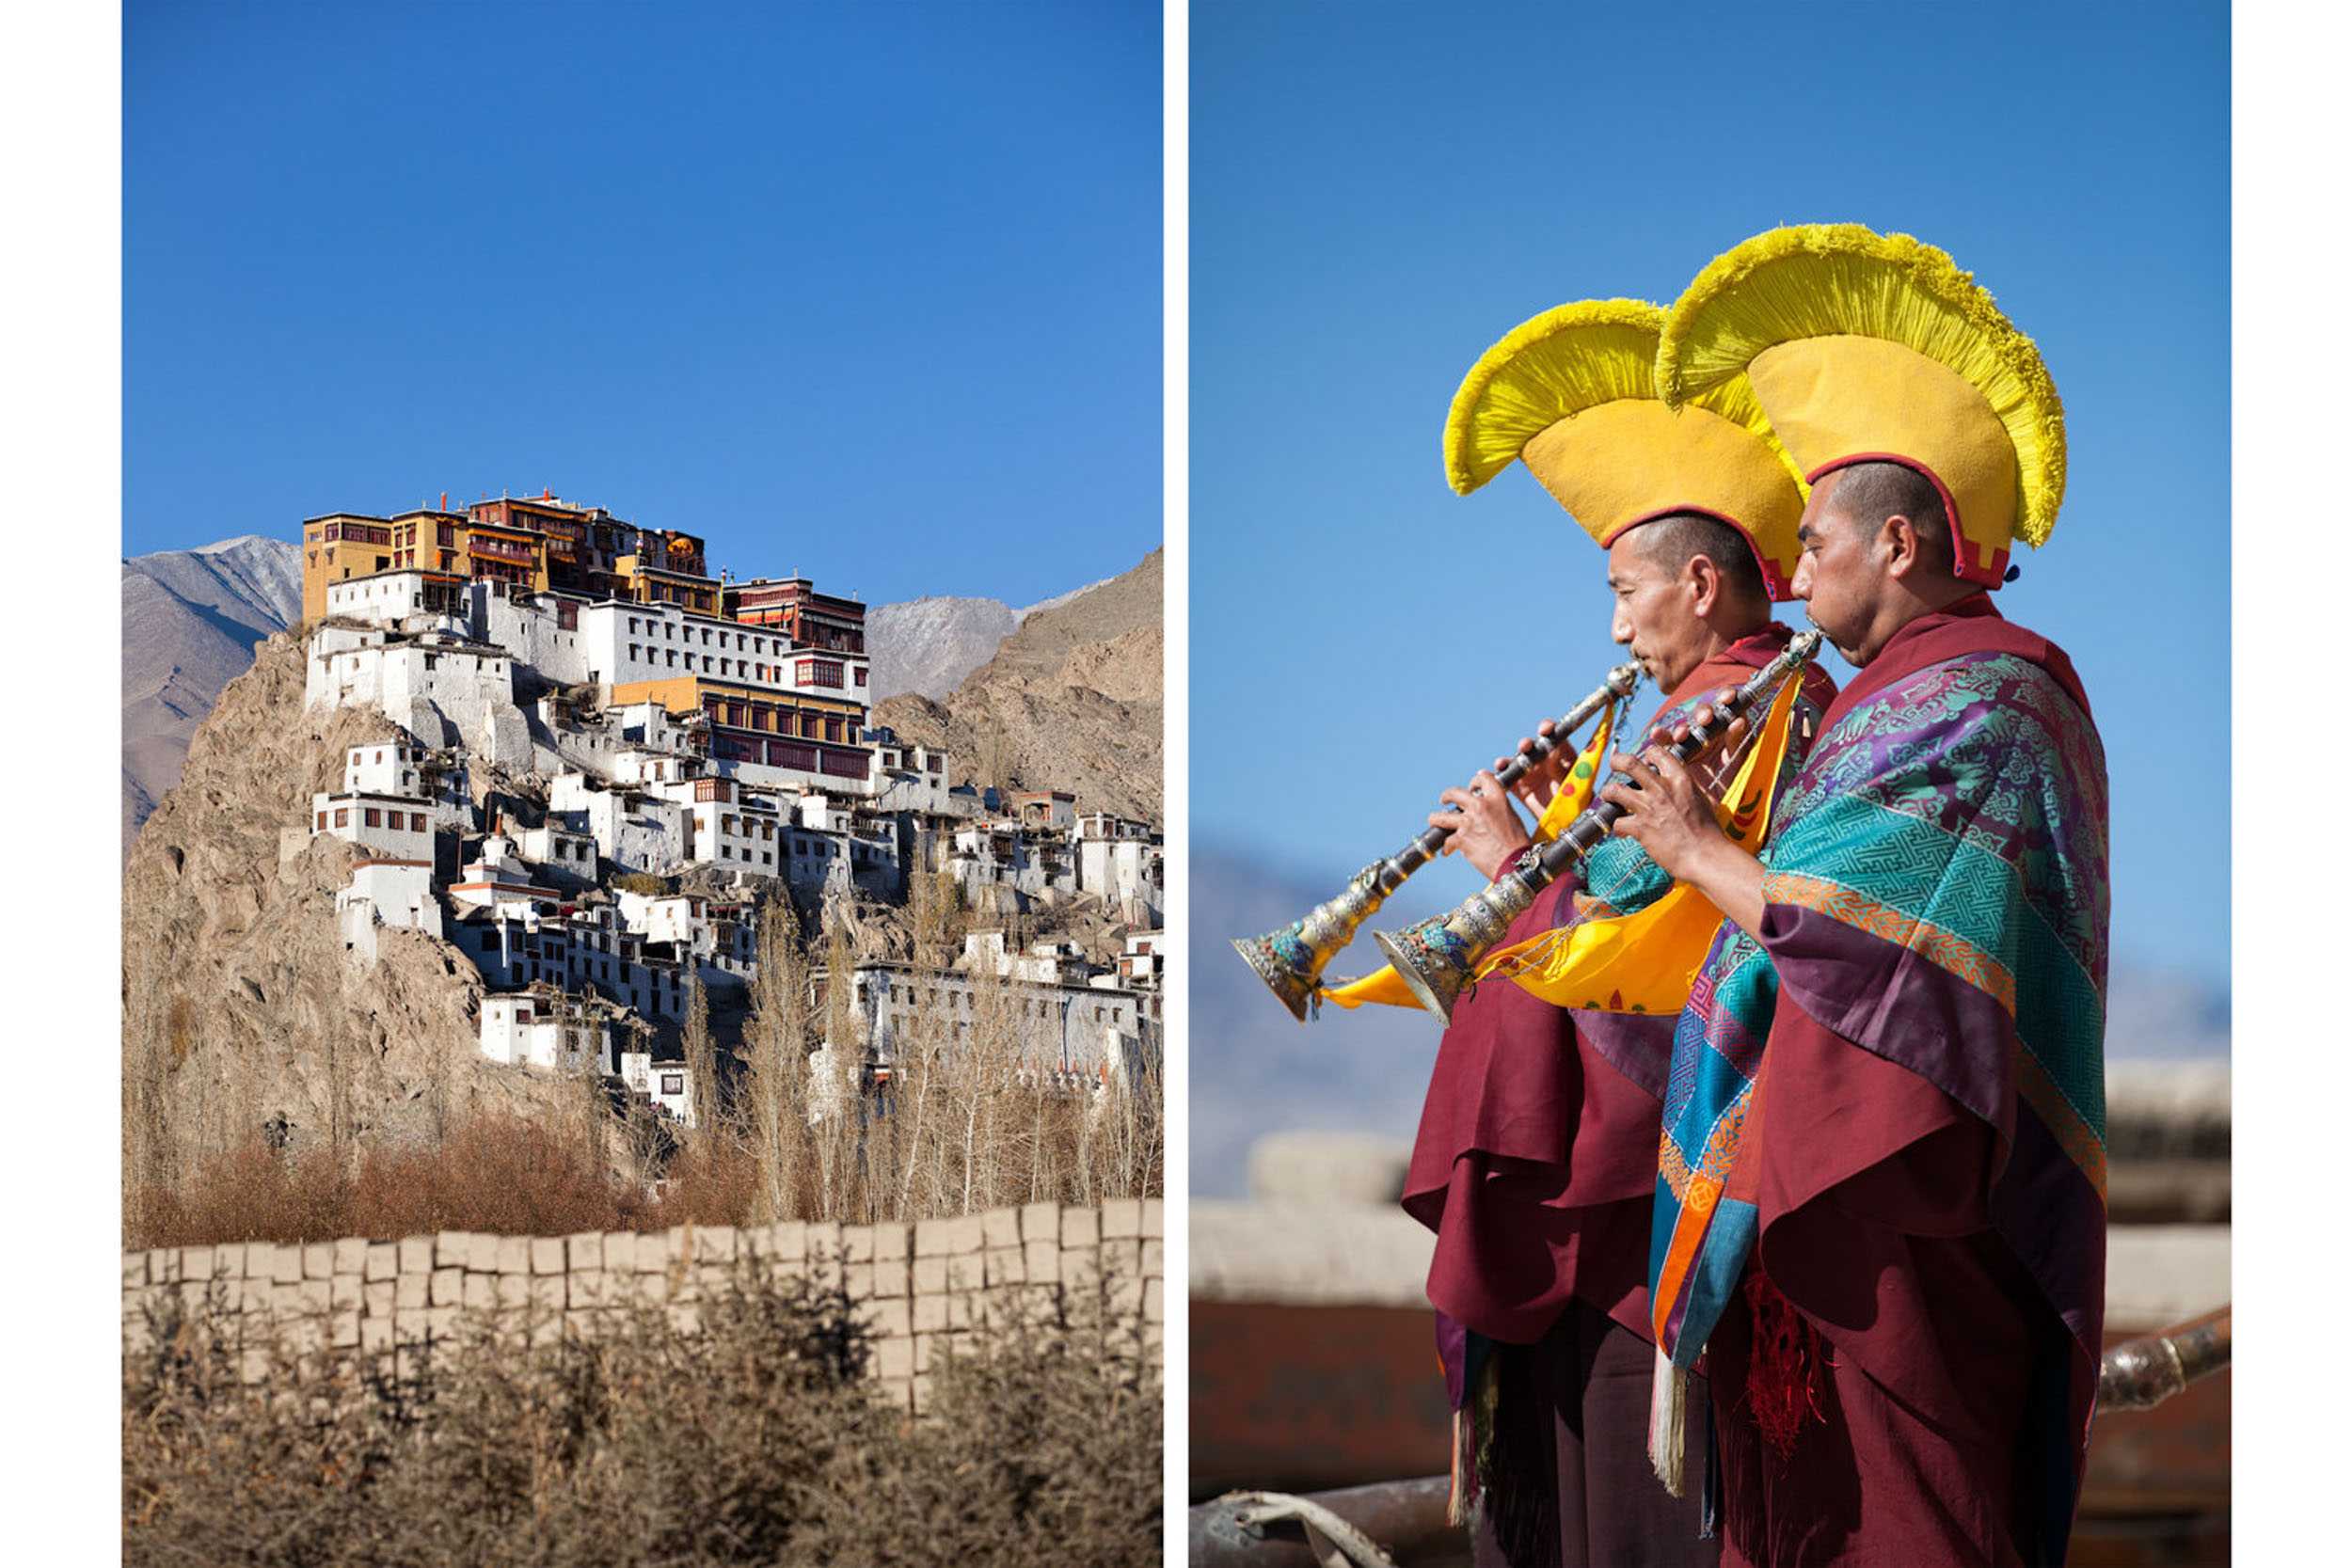 Travel-India-Ladakh-Leh-Thiksey-Buddhist-Monastery-Monk-Pujal